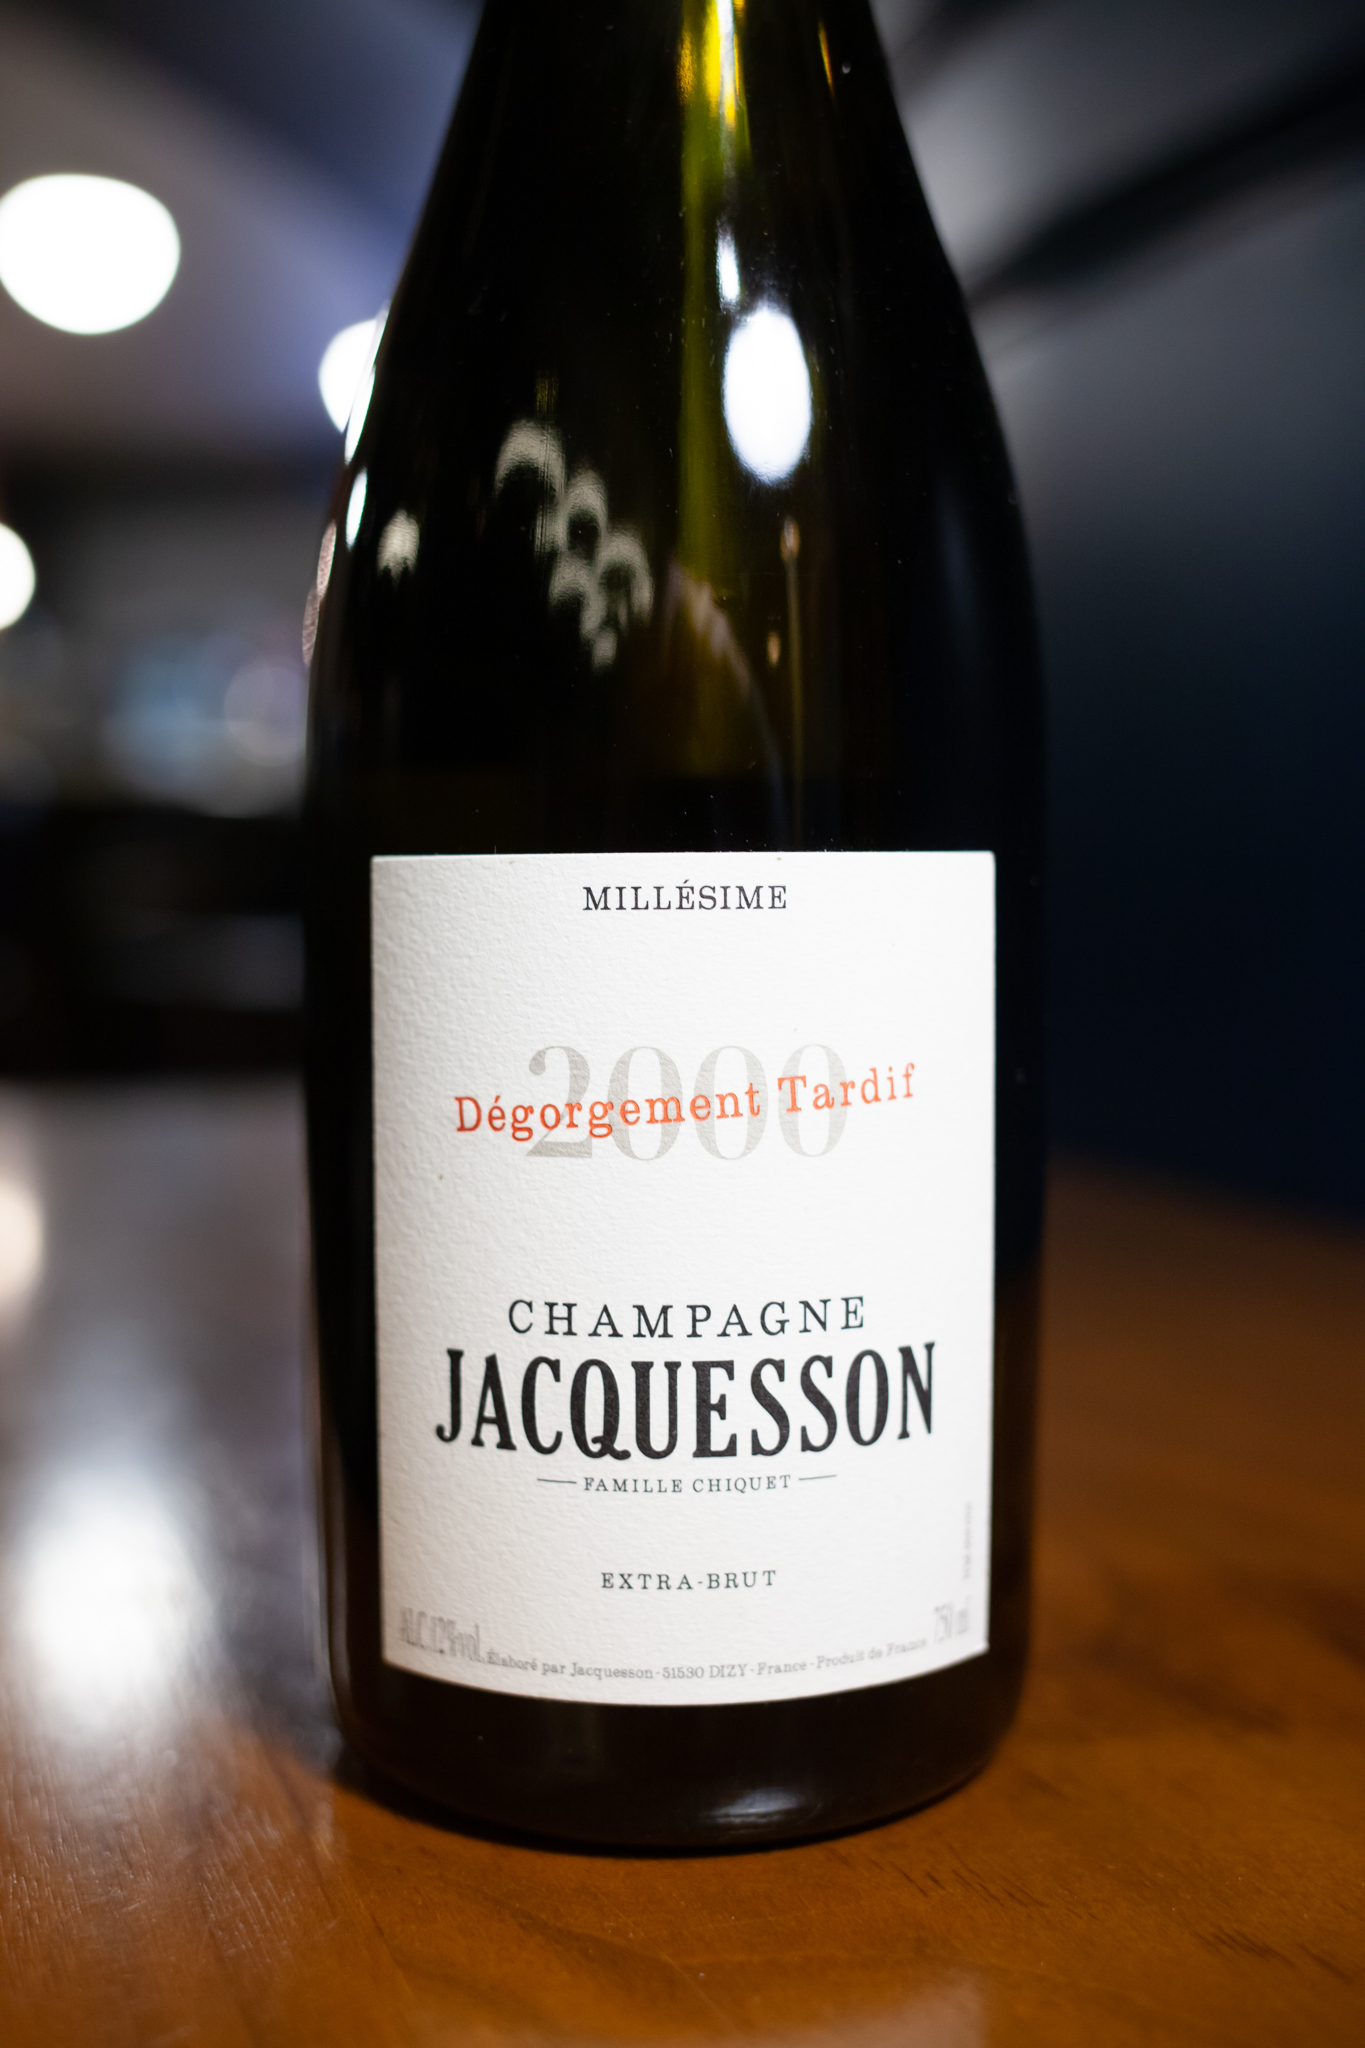 Champagne Jacquesson 'Millesime,' 2000